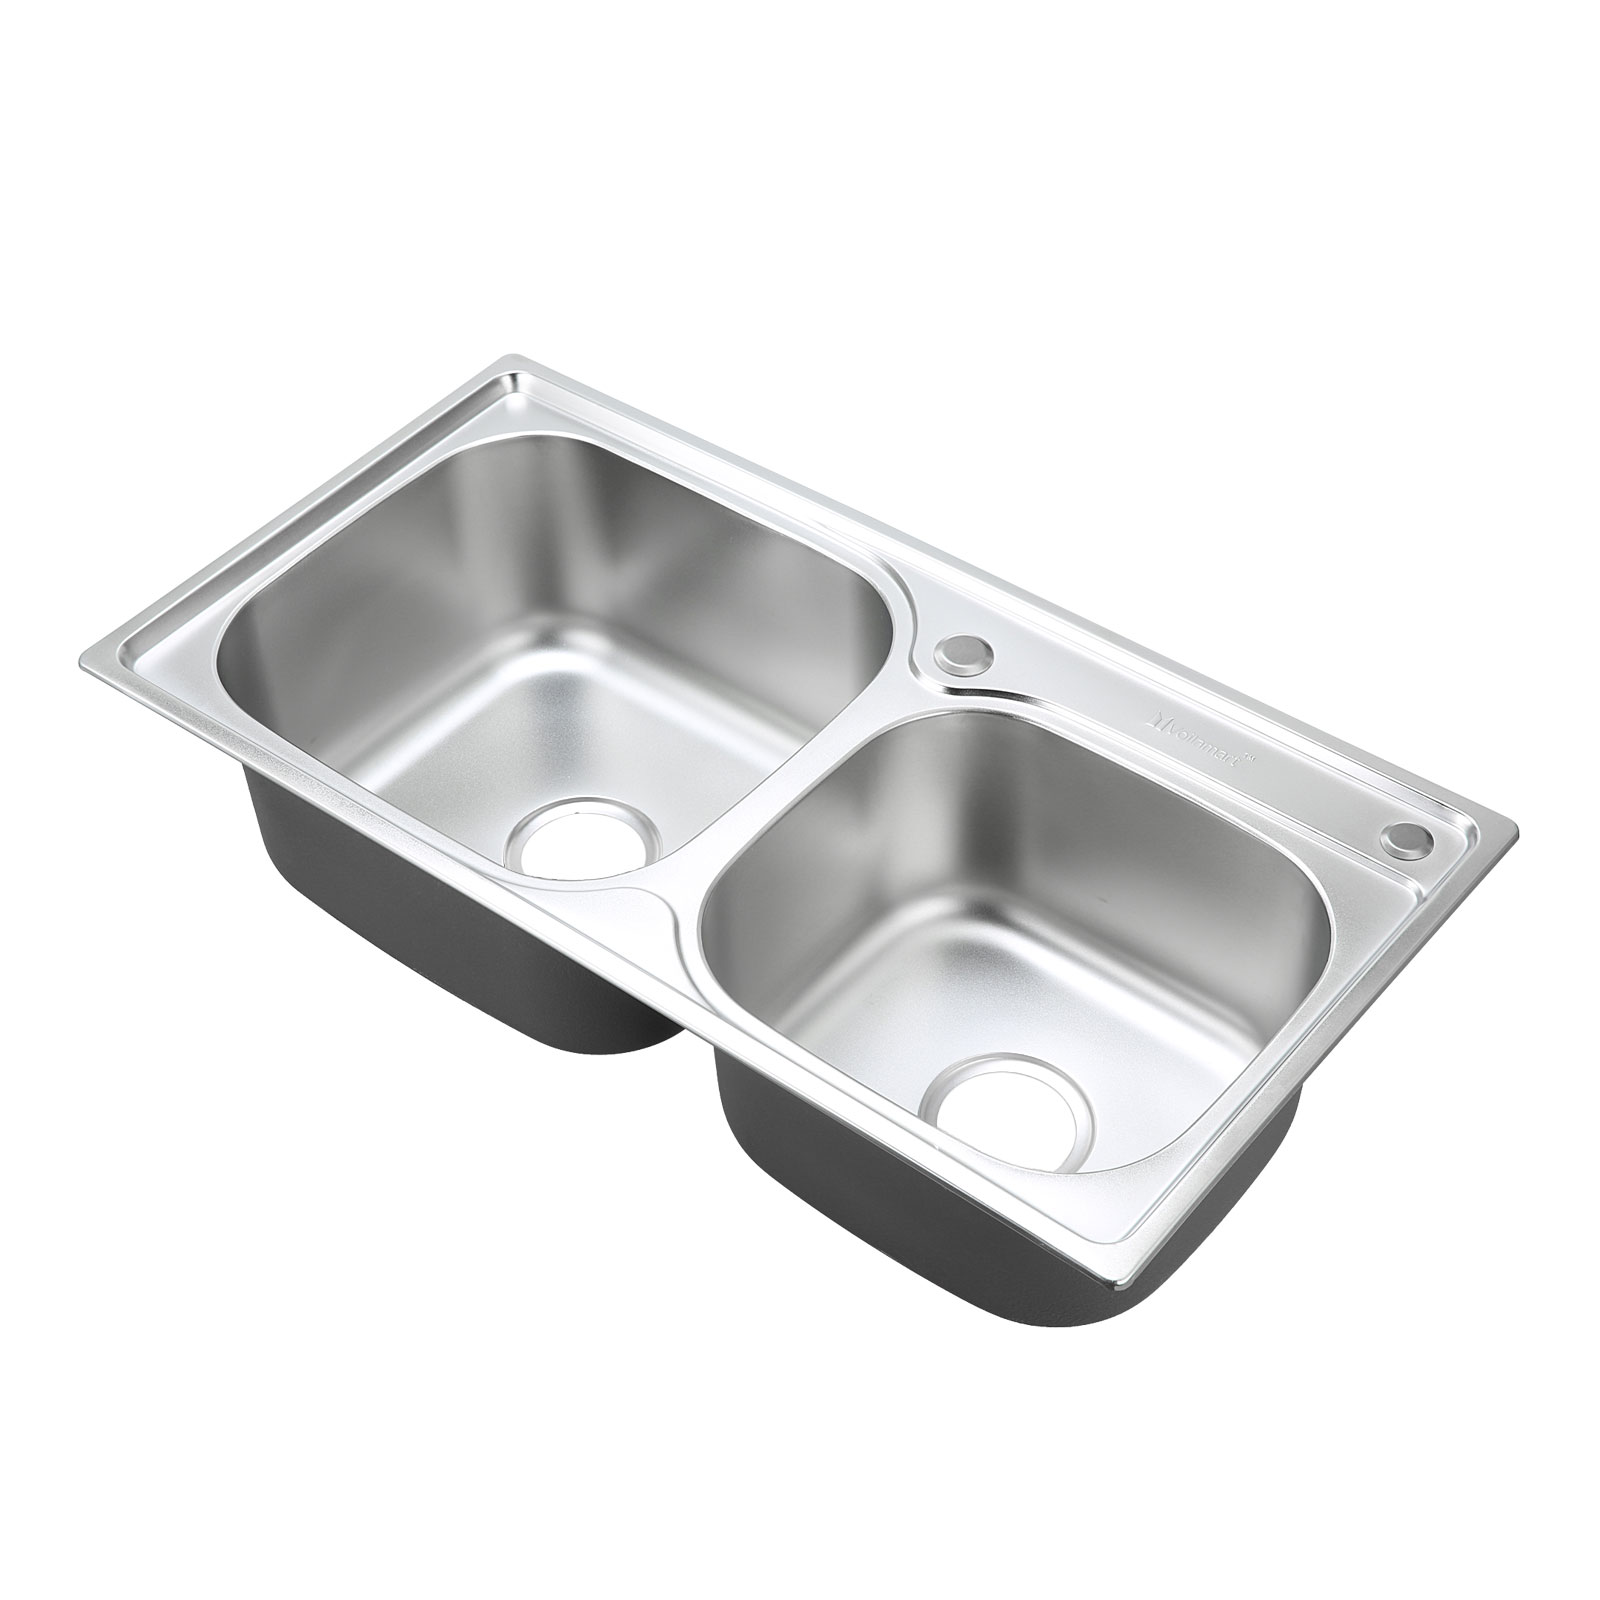 Commercial Stainless Steel Kitchen Laundry Sink 830x430mm Undermount ...